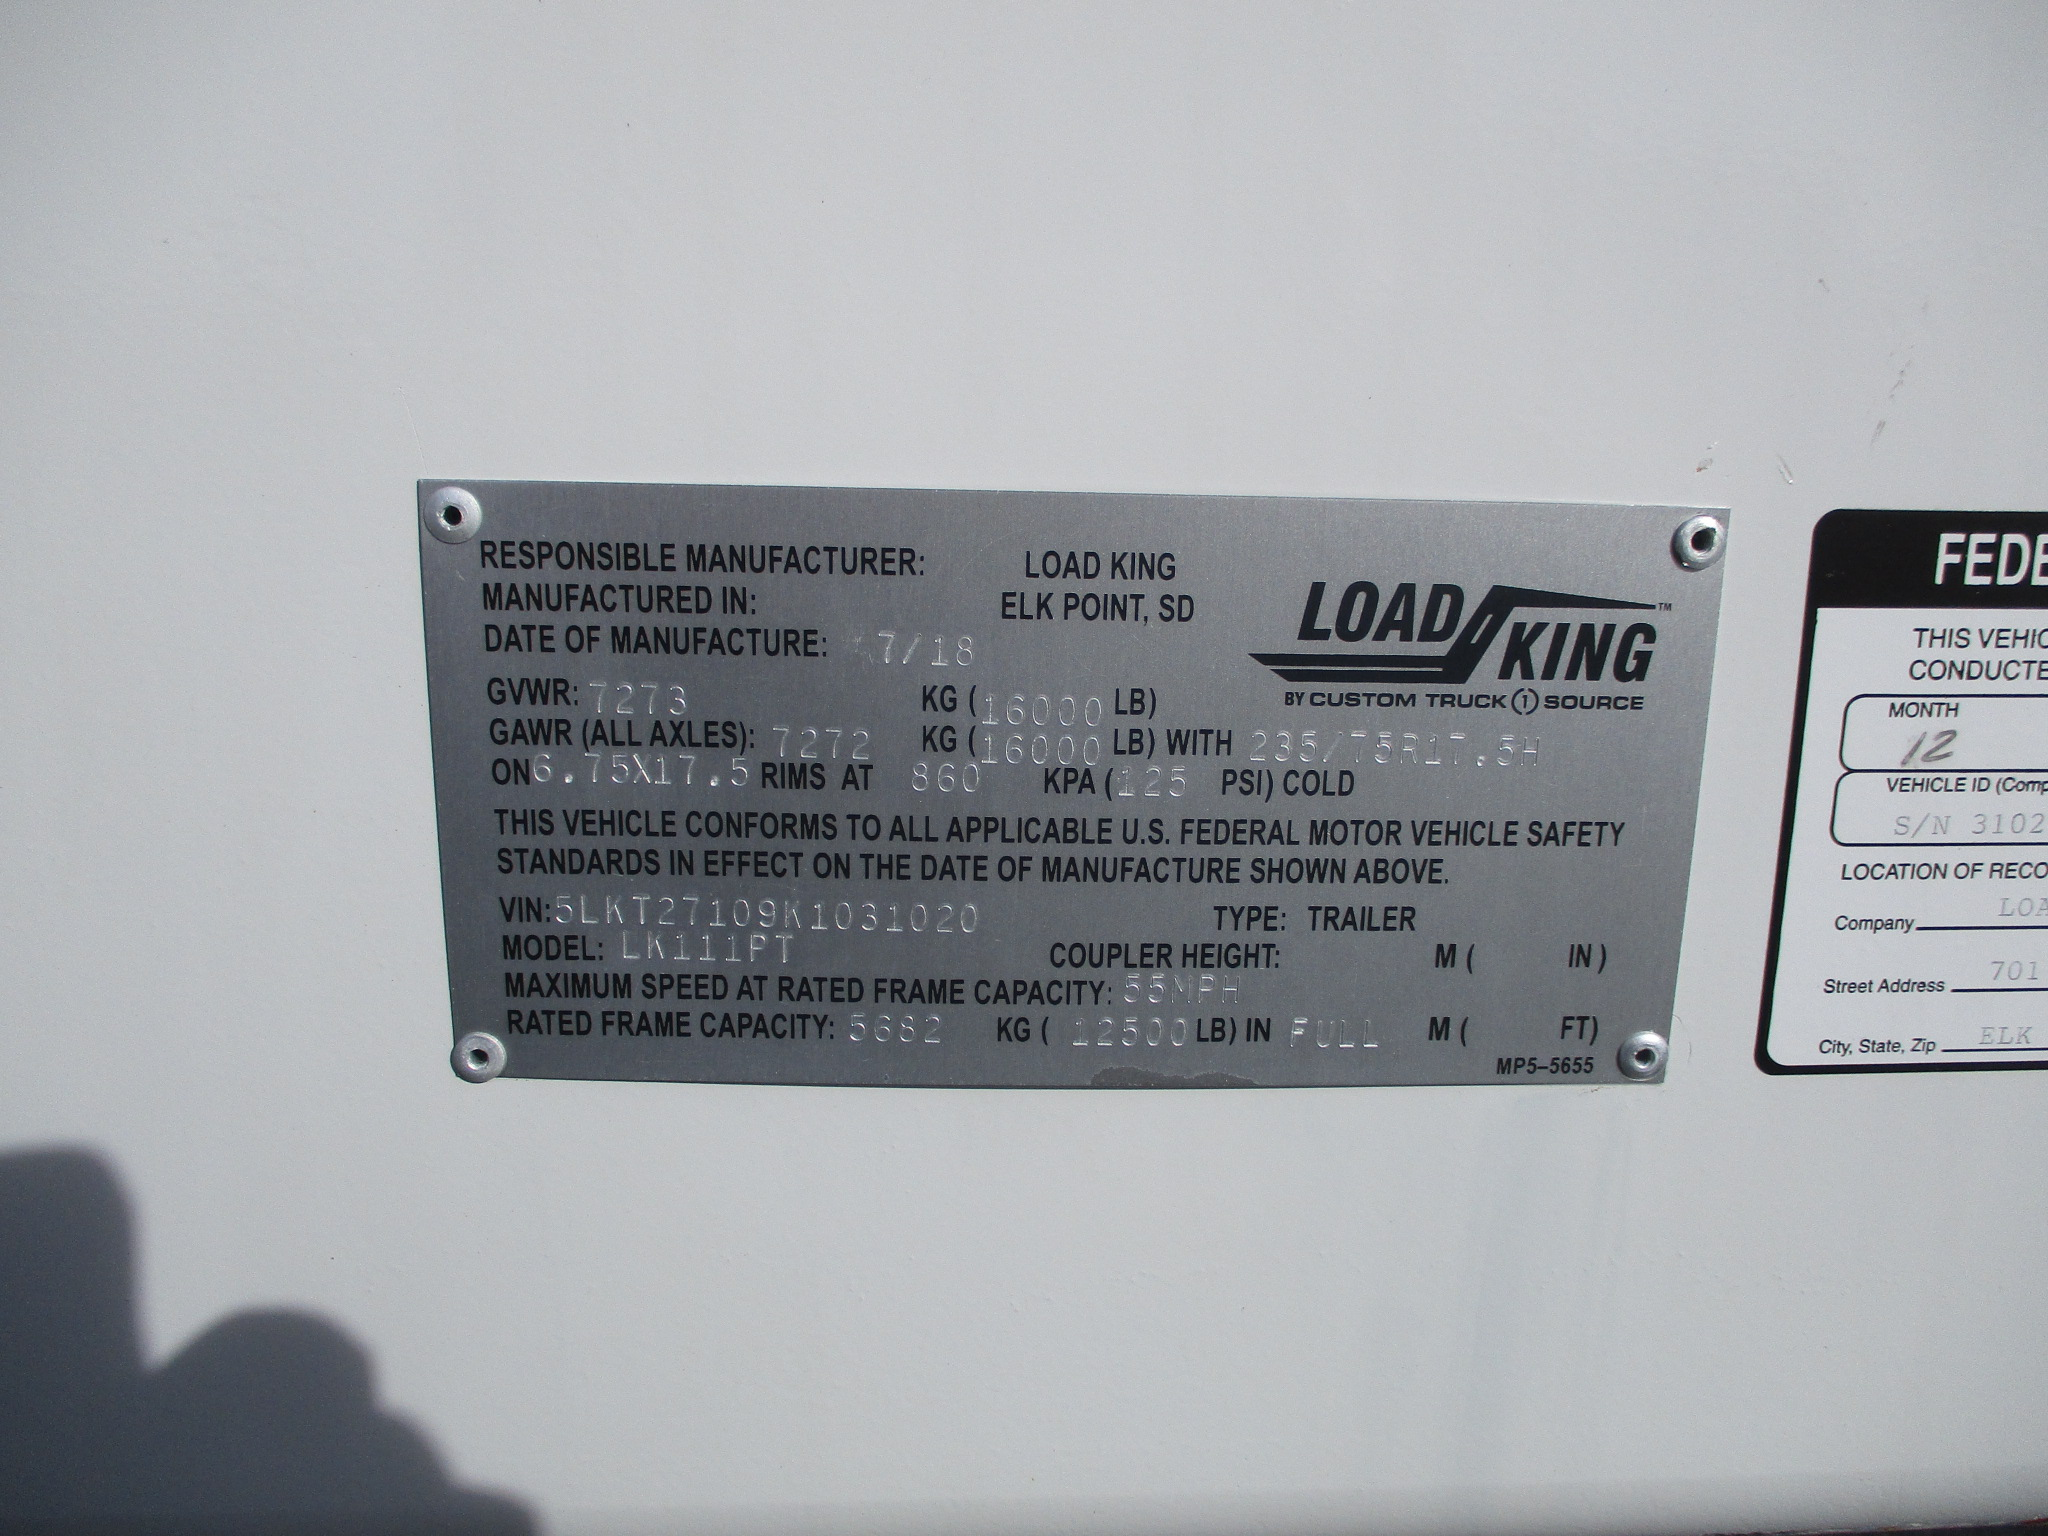 2019 LOAD KING POLE TRAILER 5935-SERIAL-NUMBER-PLATE